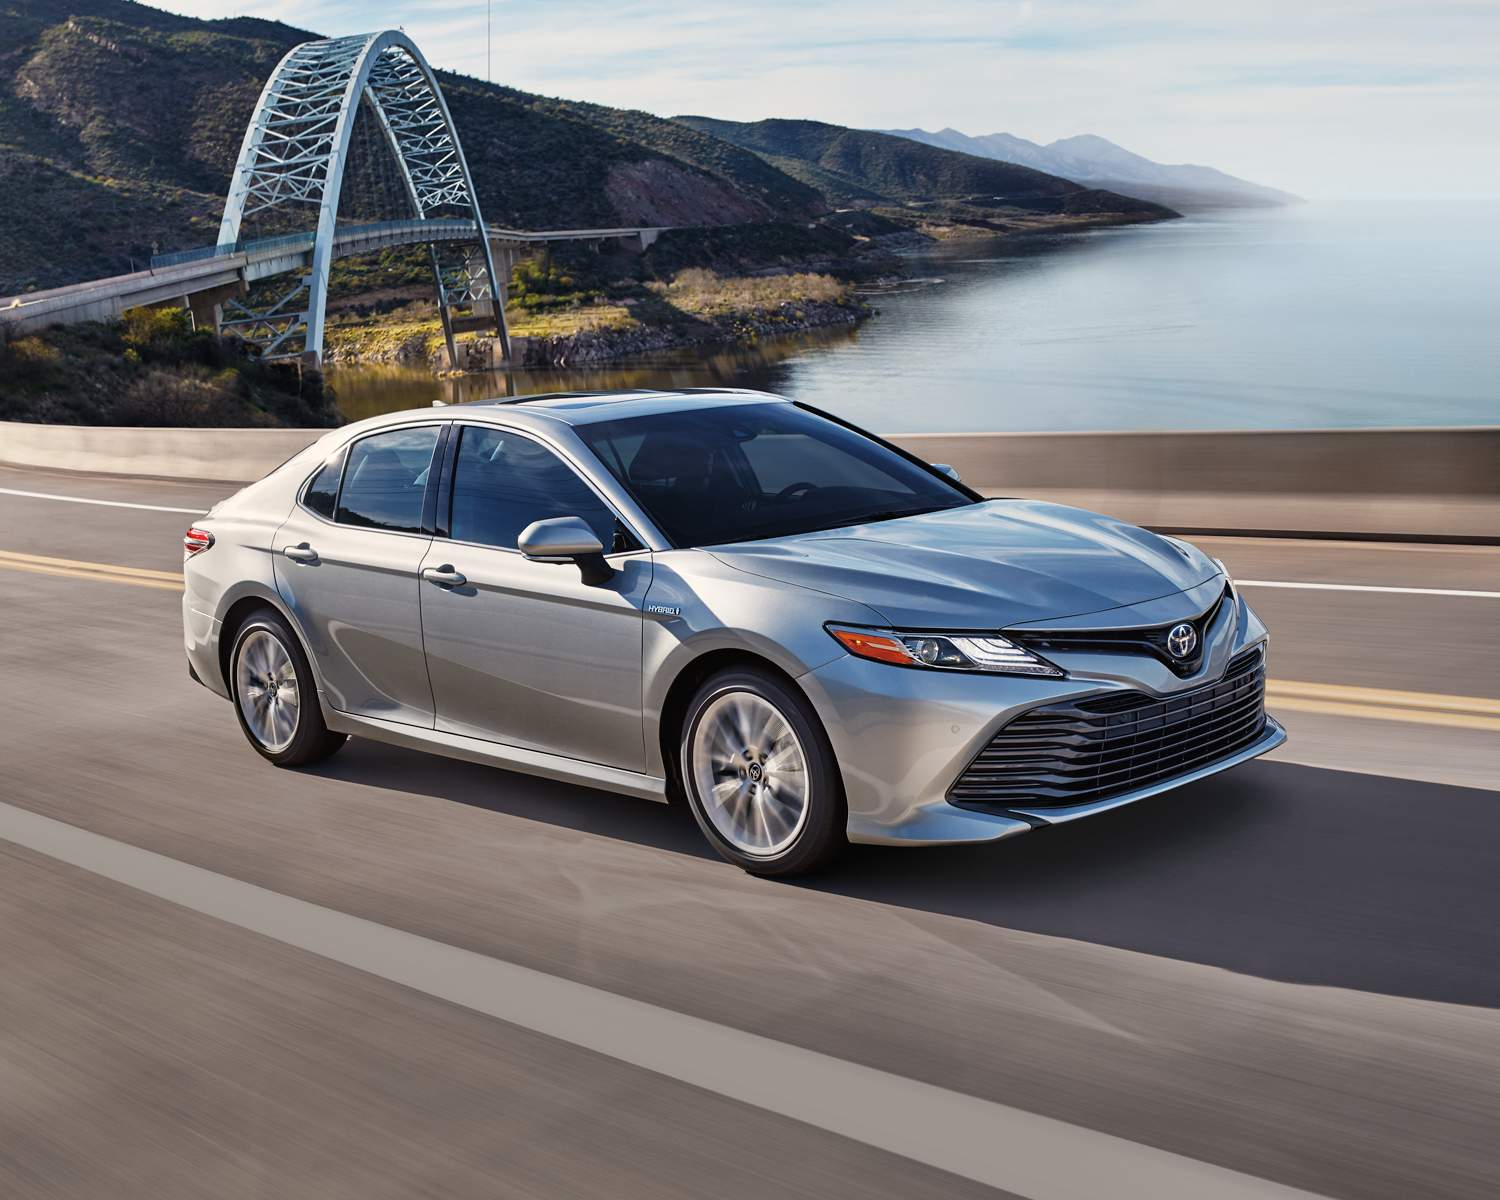 toyota-2018-camry-xle-celestial-silver-metallic-l